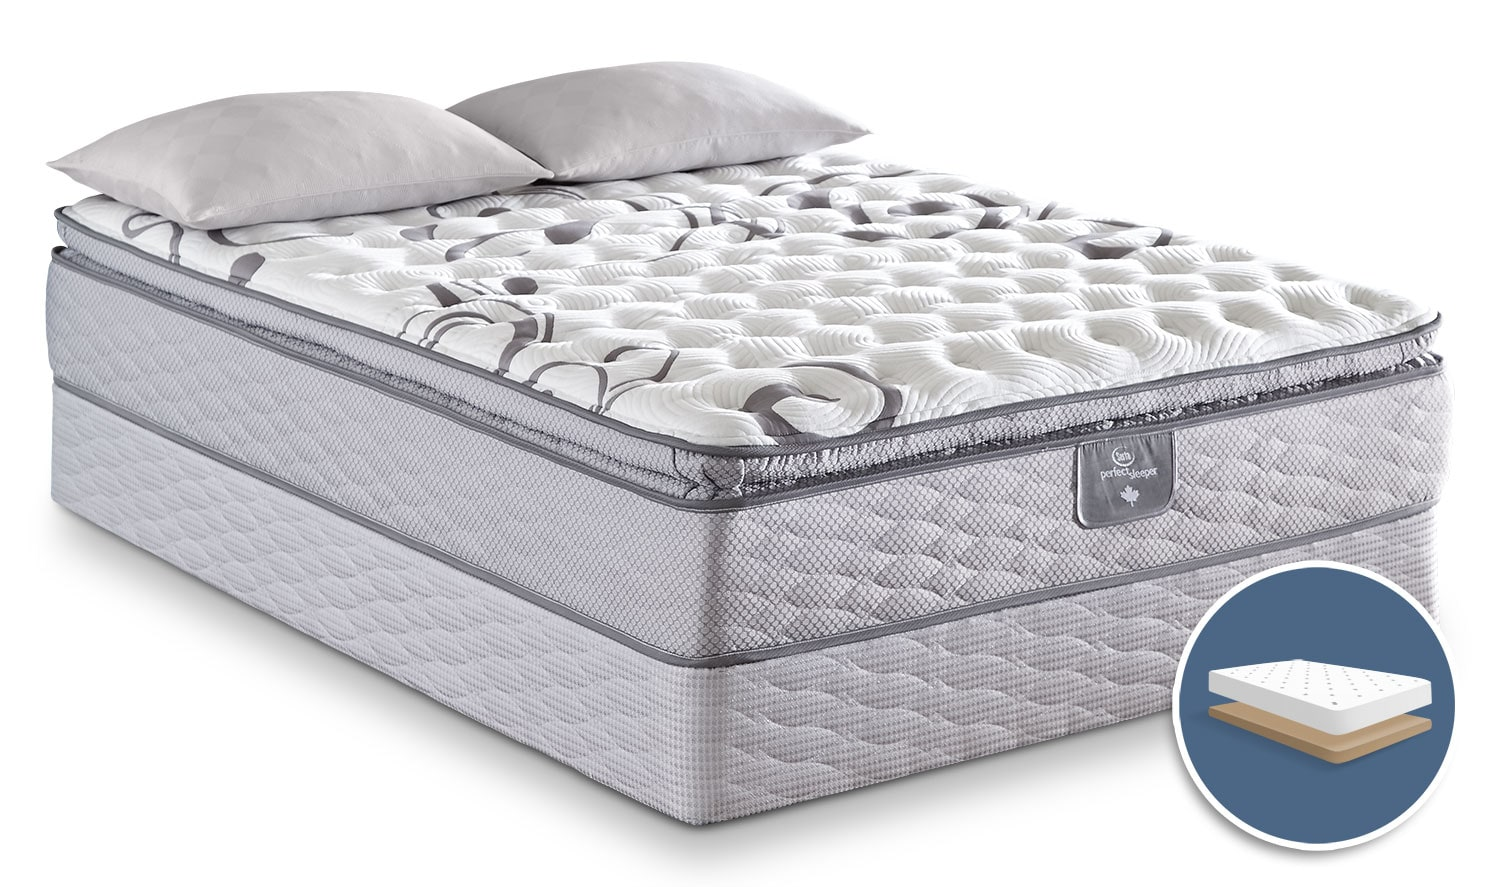 Serta Perfect Sleeper Valebridge Pillow-Top Firm Full Low-Profile Mattress Set